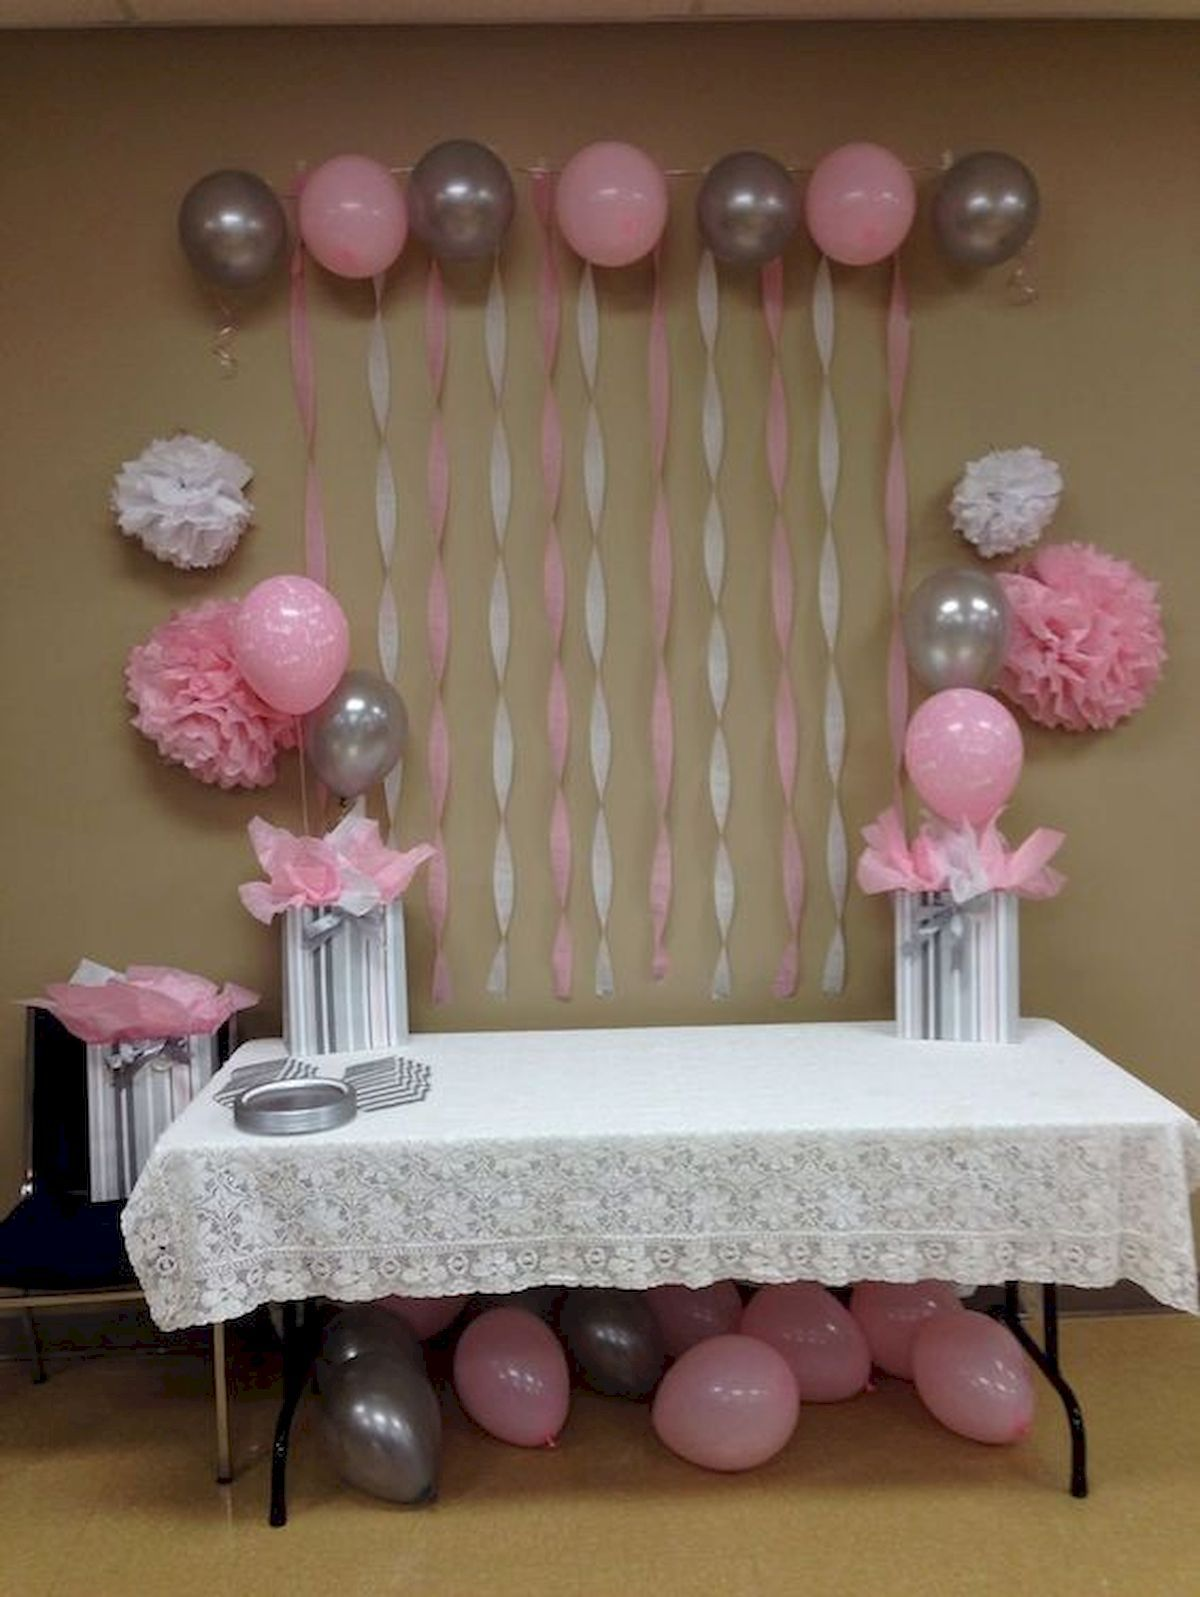 Nice 80 Cute Baby Shower Ideas For Girls Https Coachdecor Com 80 Cute Baby Shower Ideas For G Baby Shower Princess White Baby Showers Baby Shower Decorations